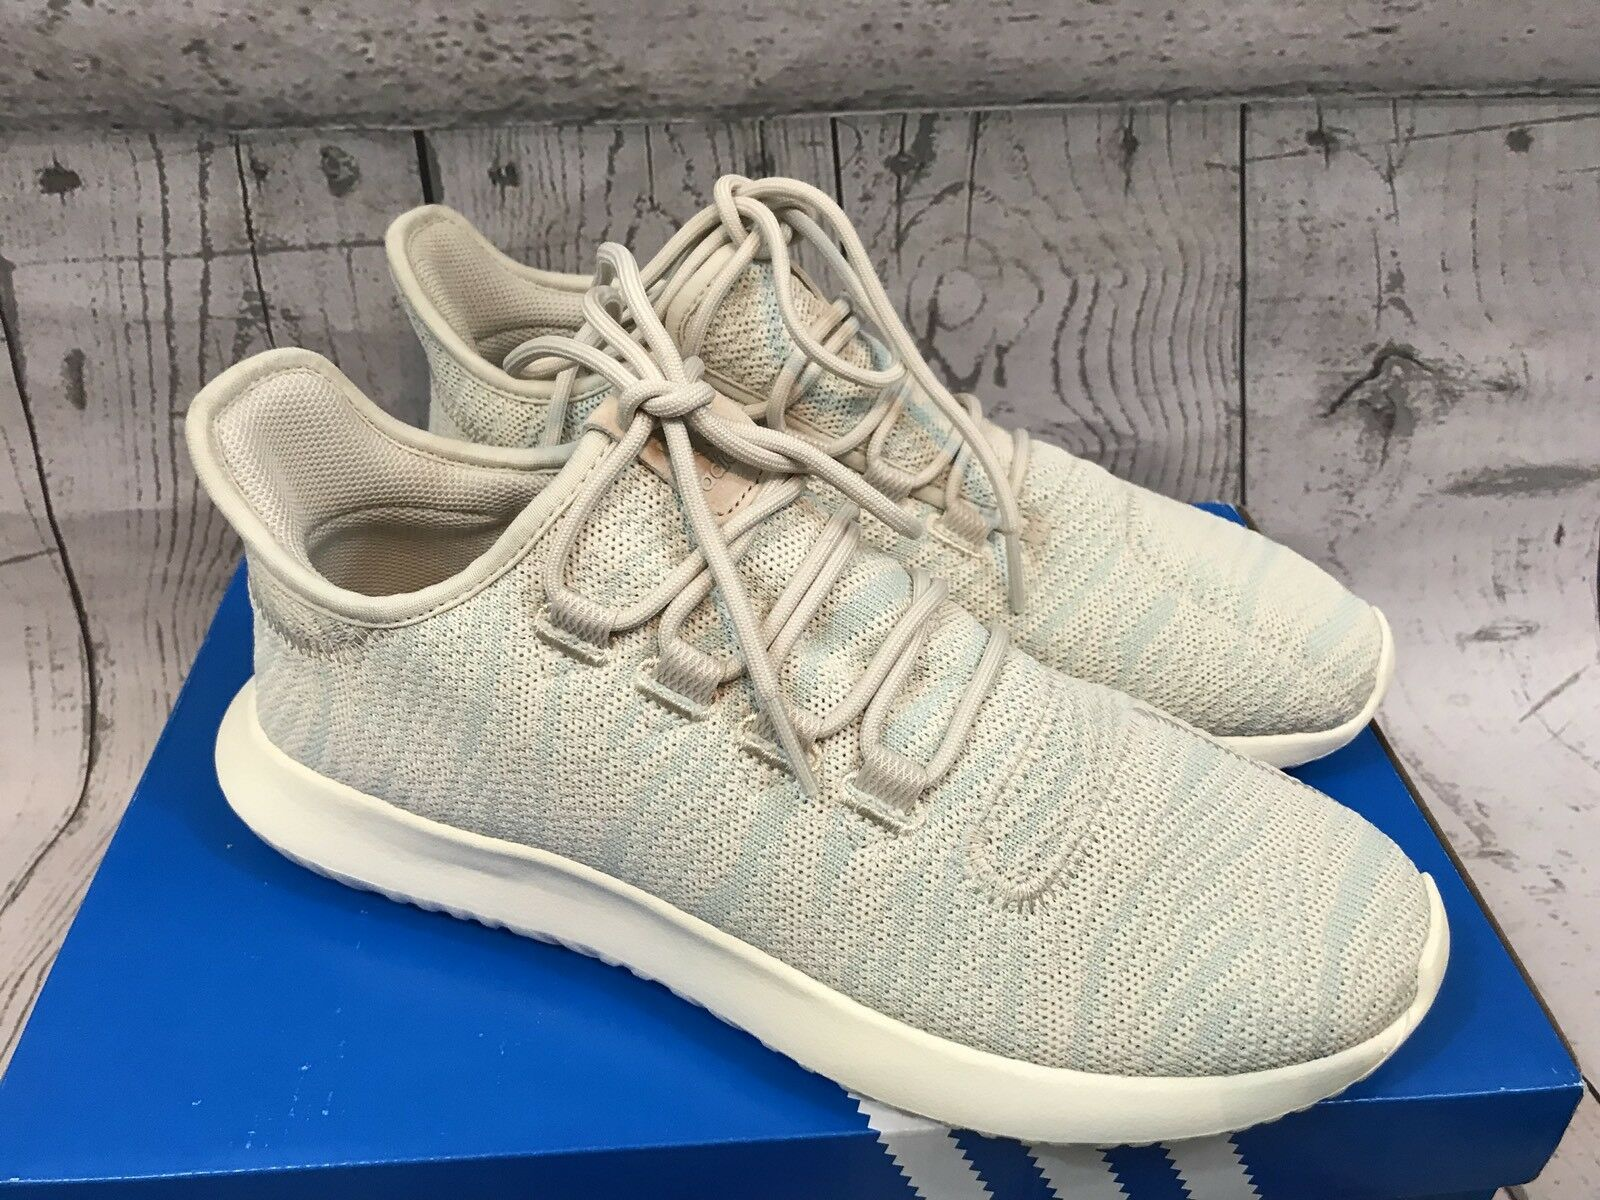 Adidas Originals Shoes Womens Clear Brown Ash Green Tubular Shadow Shoes Originals Size 9 NWT 627055